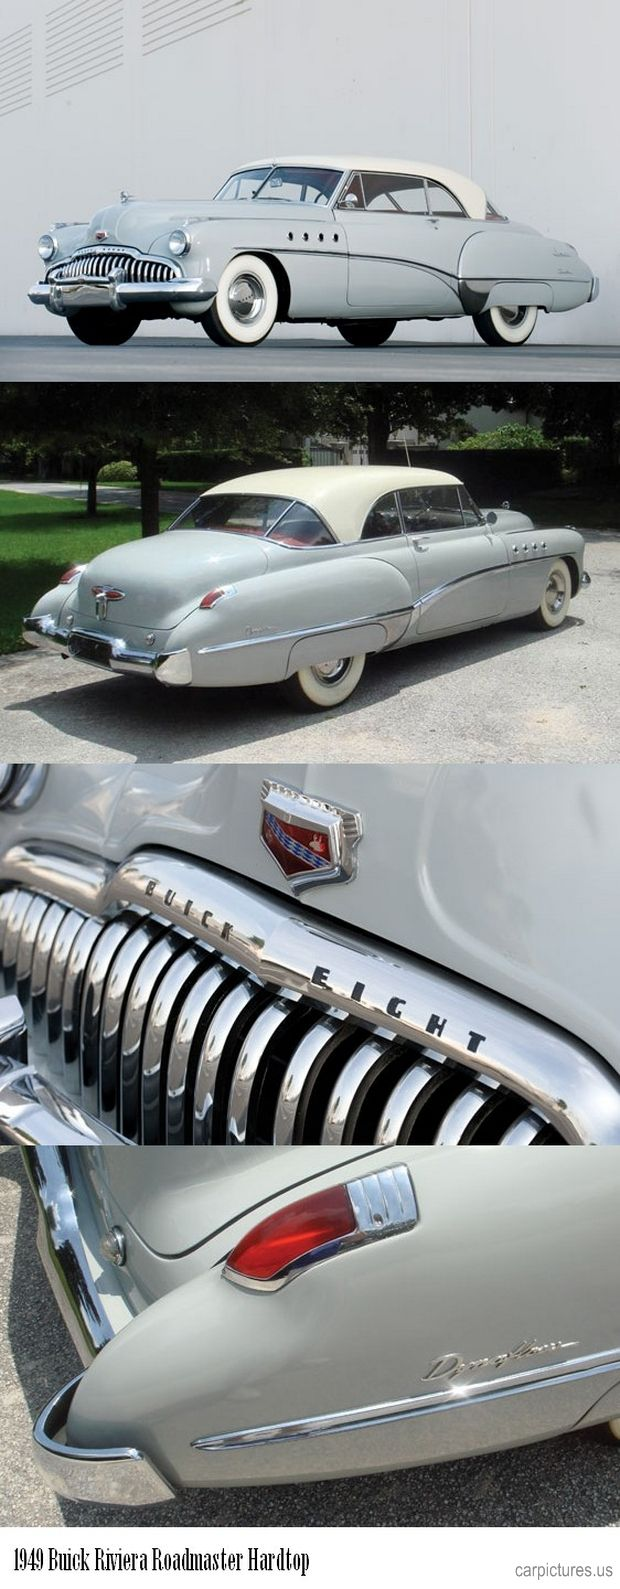 1949 Buick Riviera Roadmaster Hardtop. From a stylish time gone by. http://carpictures.us